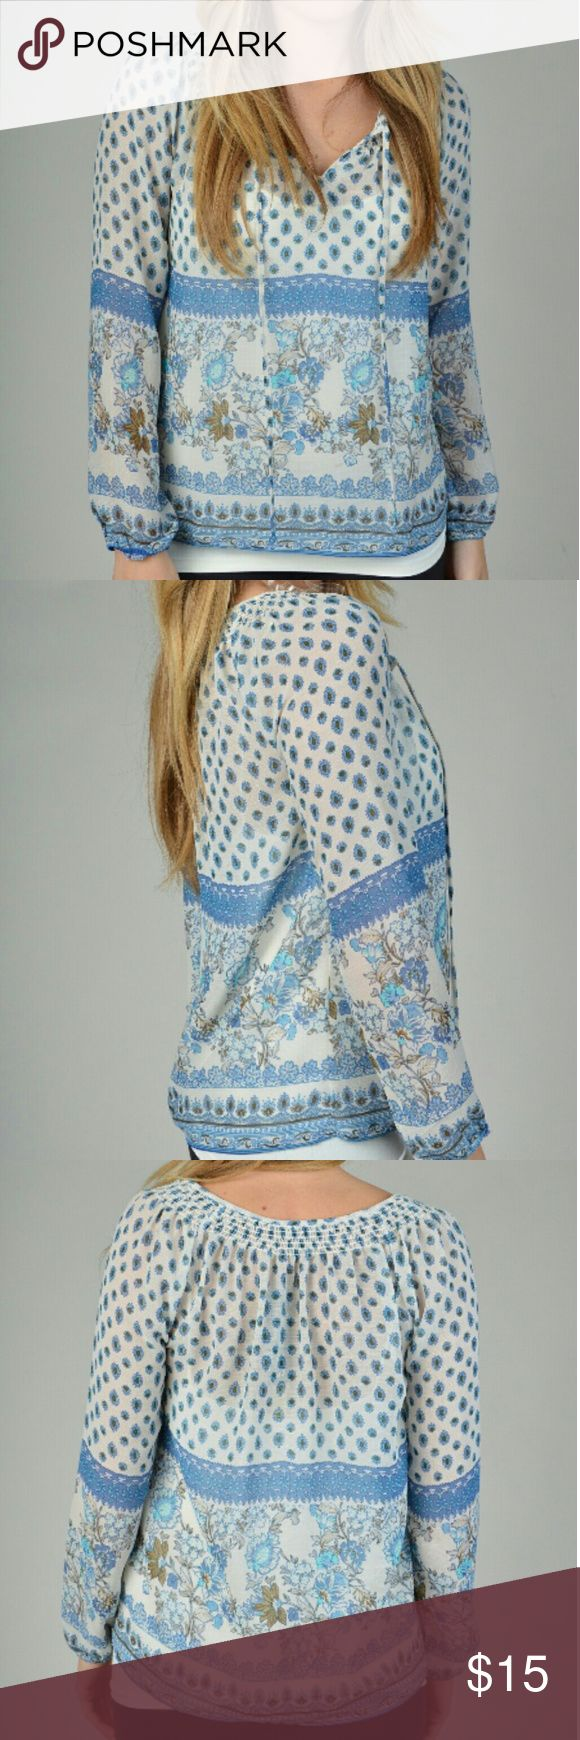 """Sheer Boho-Style Printed Blouse *NWT! *Keyhole/ties in front *Light-Blue & Cream print *Size L (Juniors) *Length: 24"""", Width: 42"""" around *100% Polyester, Hand Wash/Dry Flat Timing Tops Blouses"""